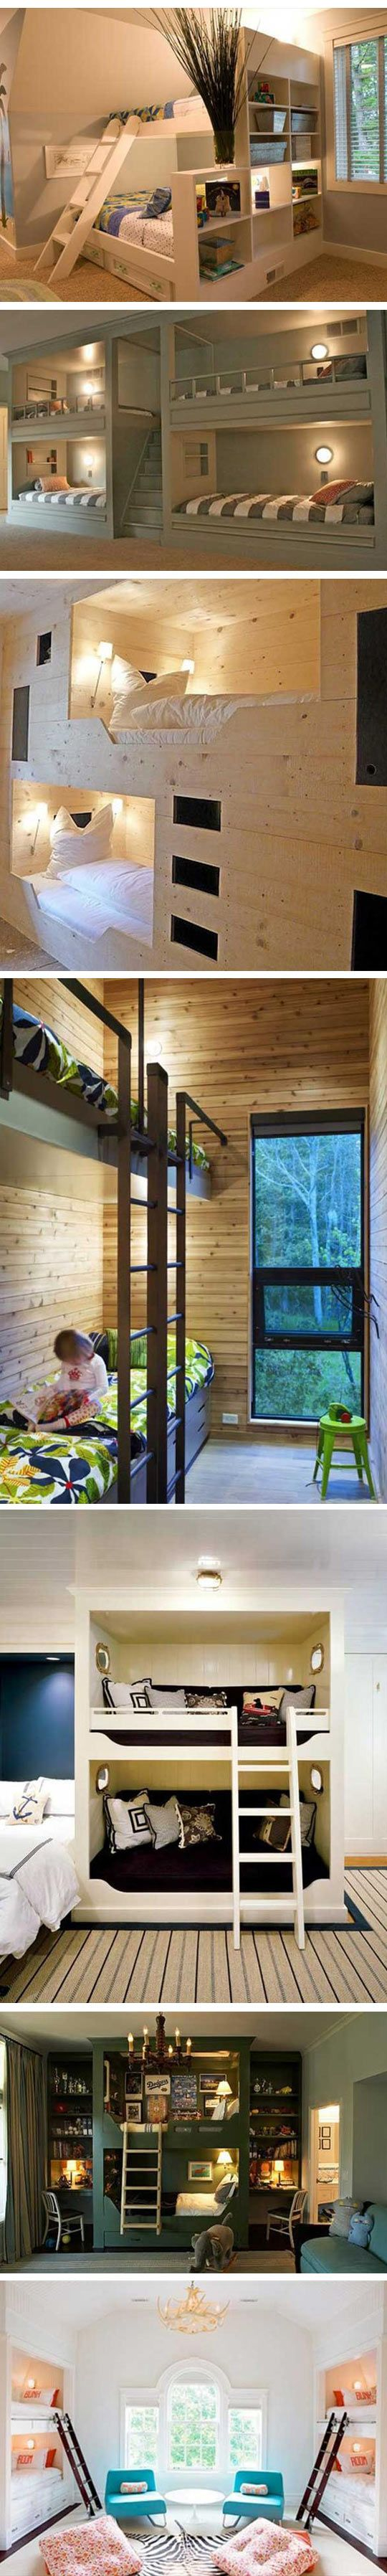 Bunk beds with slide and rope - The Coolest Bunk Beds